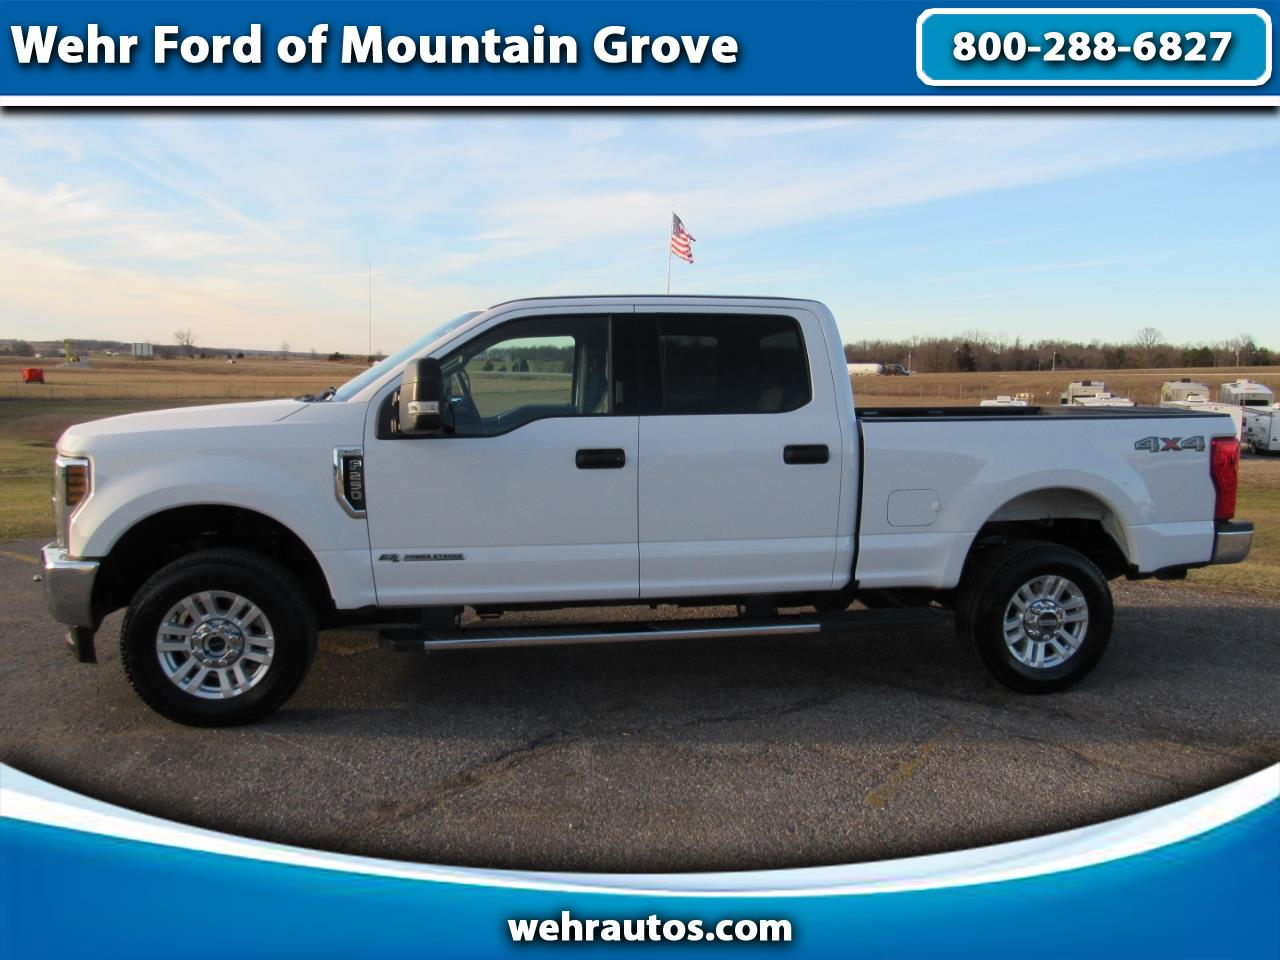 2018 Ford Super Duty F-250 XLT 4WD Crew Cab